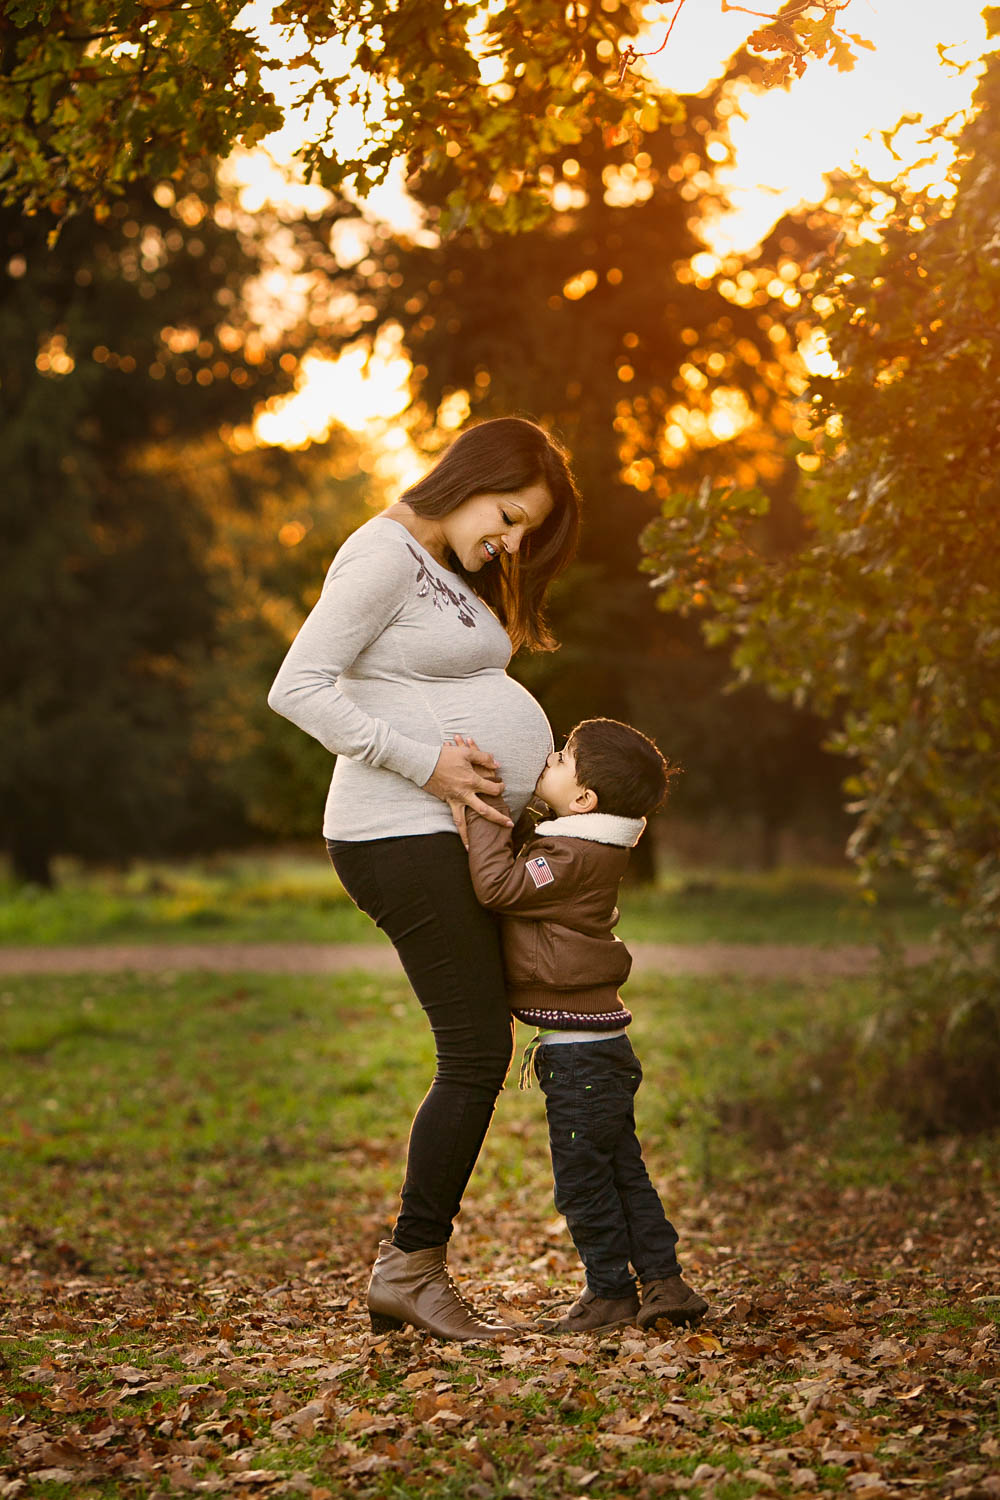 Pregnant mother and son kissing bump during a Family Autumn photoshoot at Rushmere park in Bedfordshire.